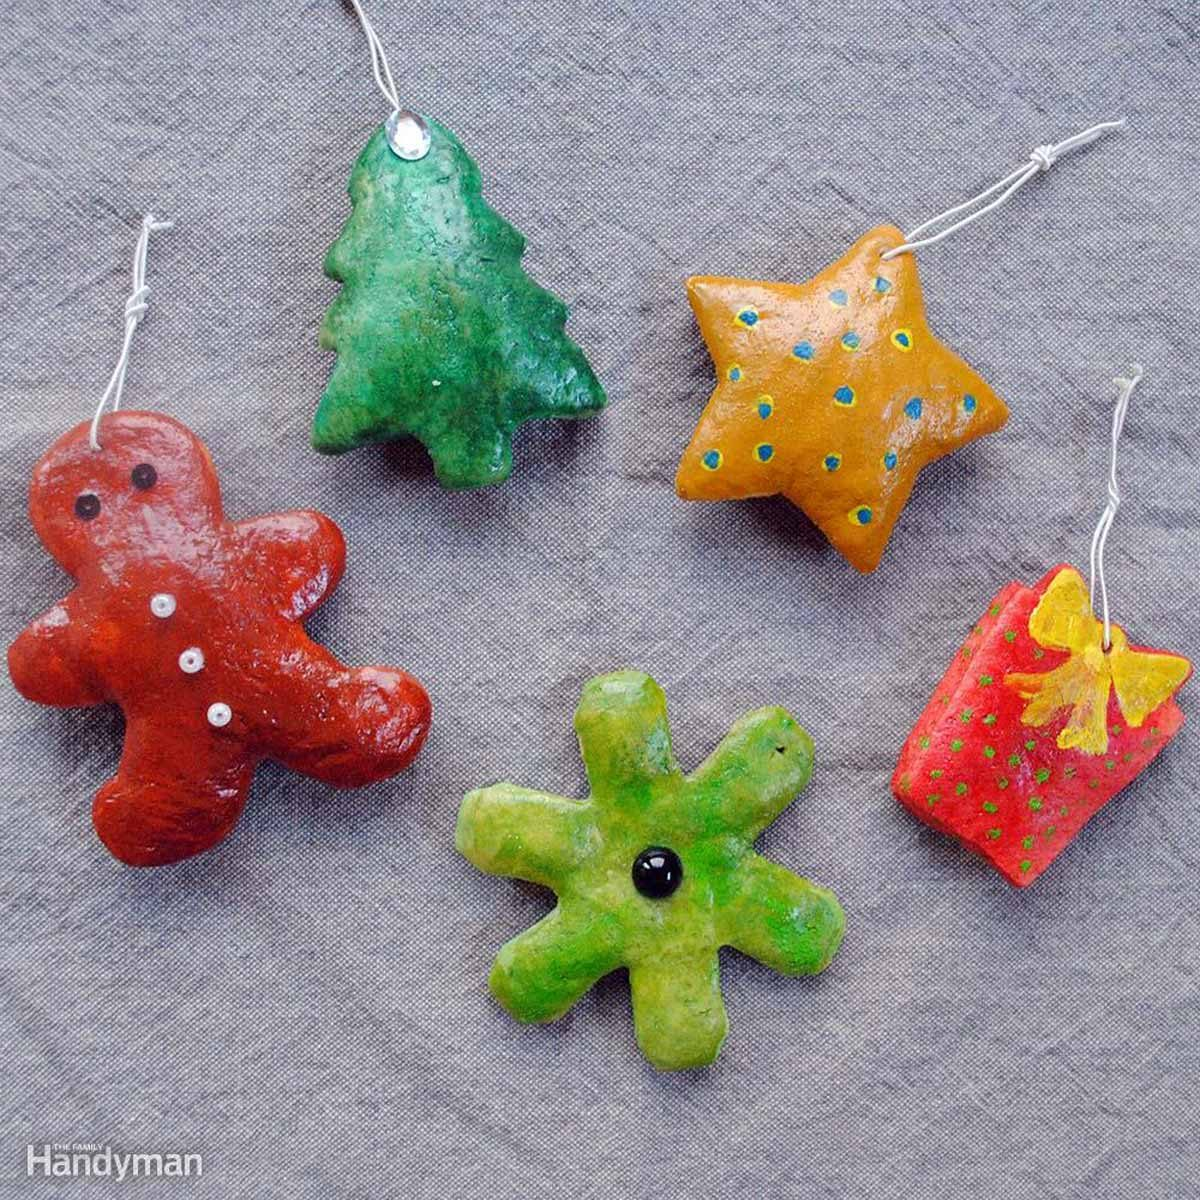 Simple Christmas Tree Decorations: Salt Dough Cookie Ornaments